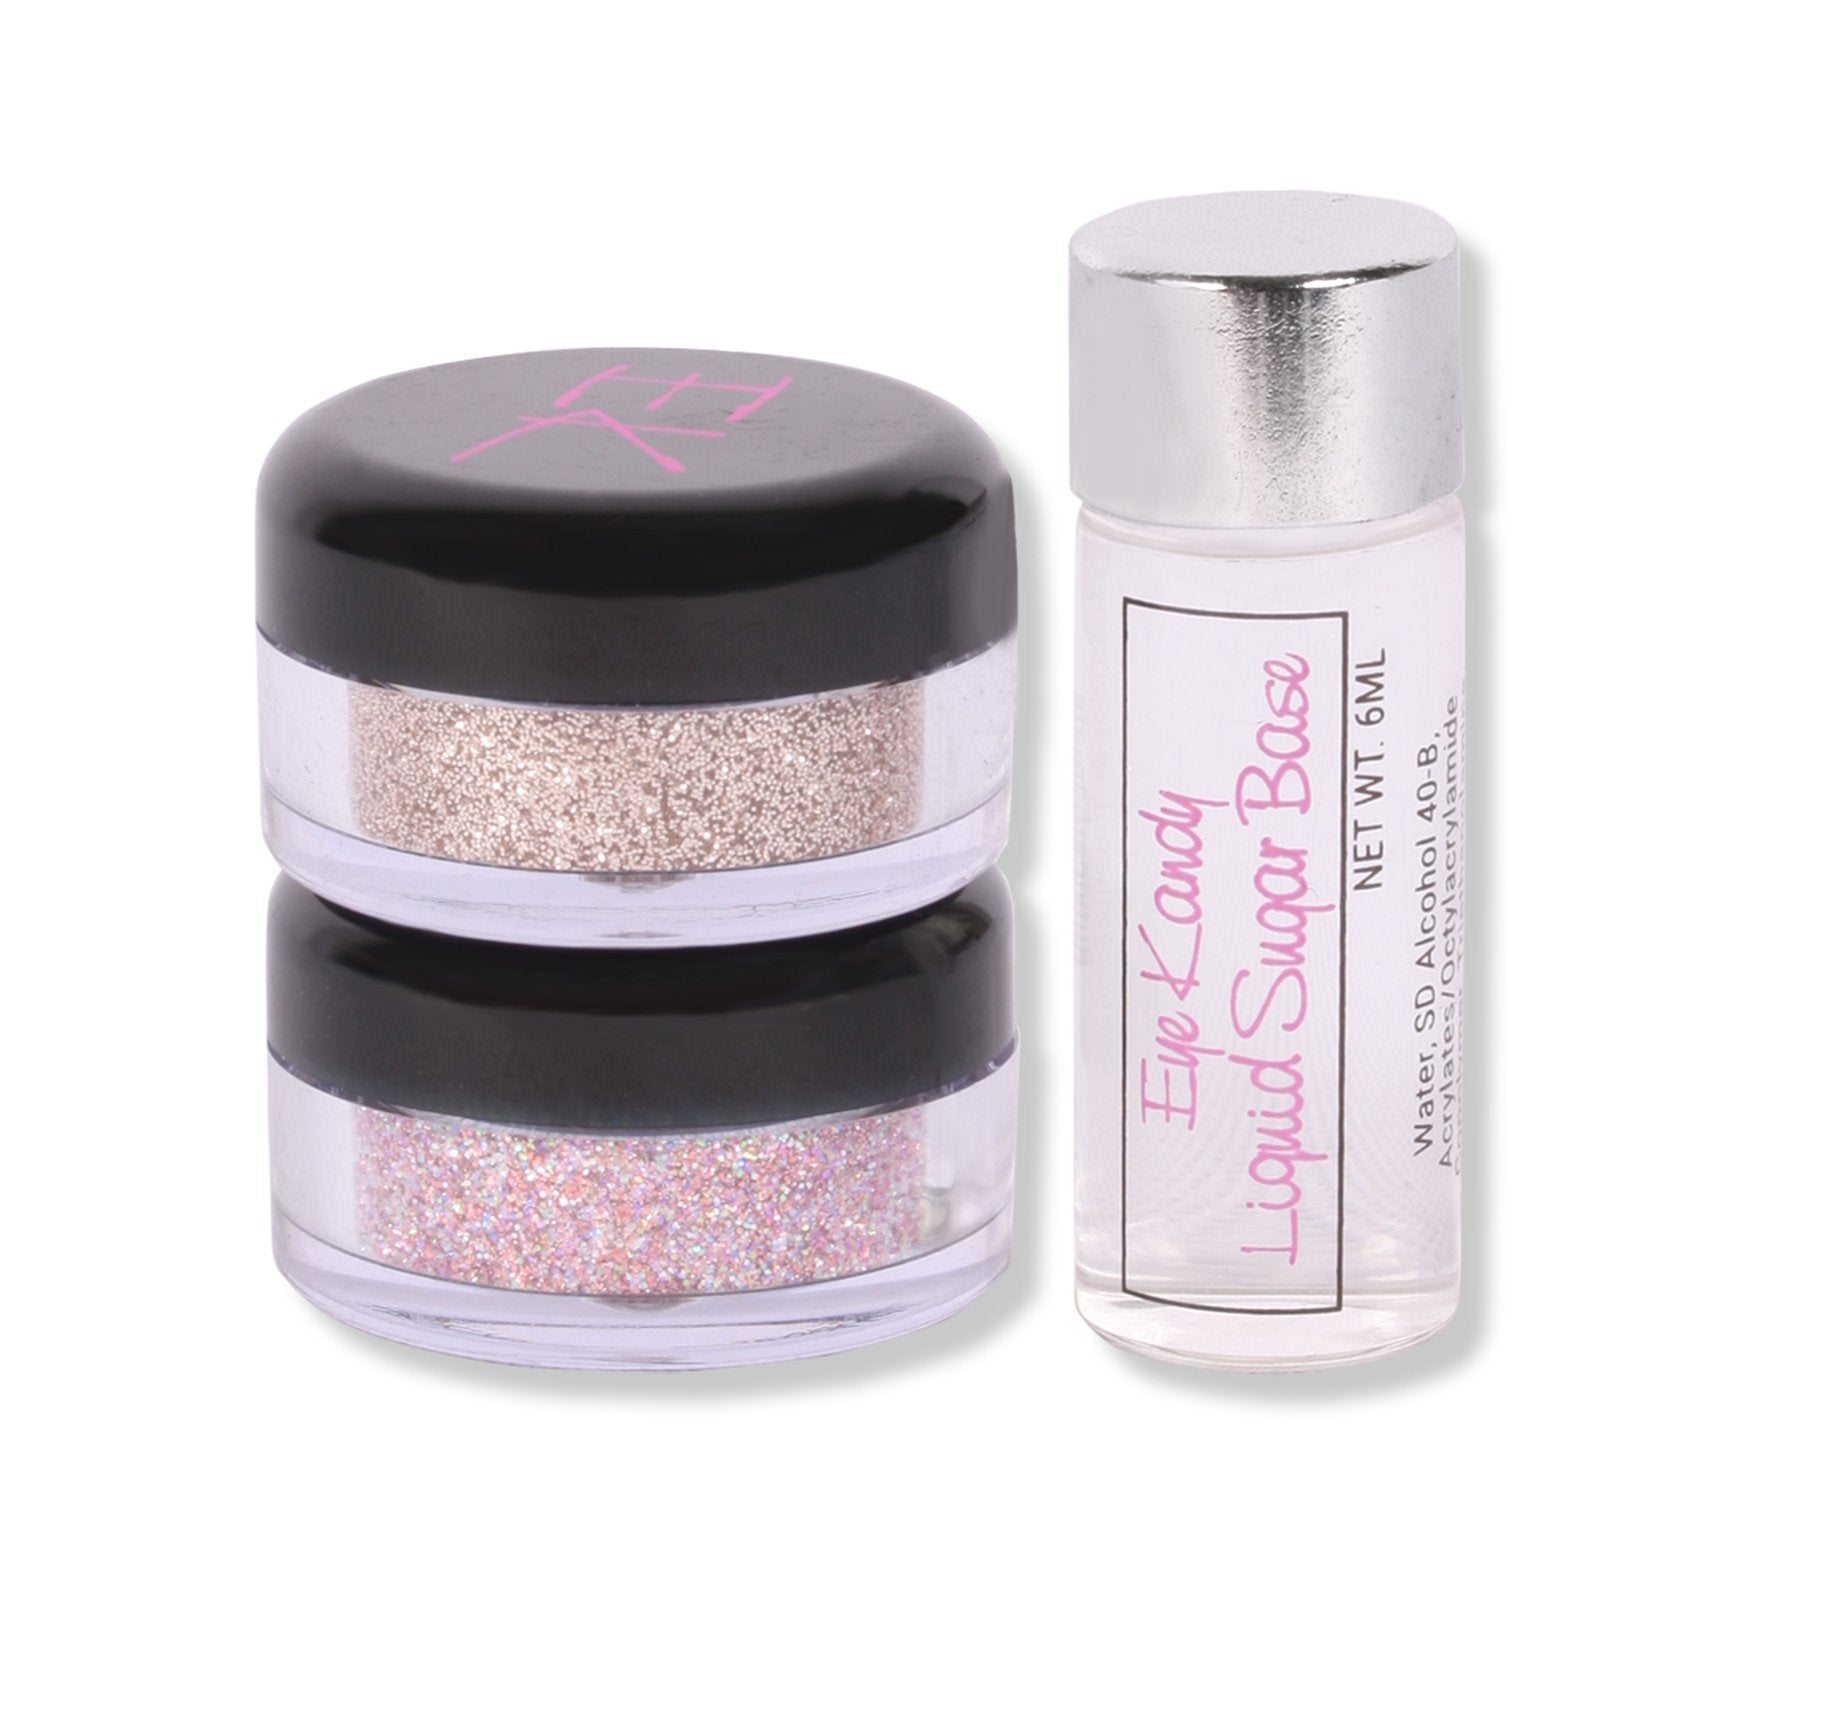 GLITTER EYE LINER KIT, view larger image